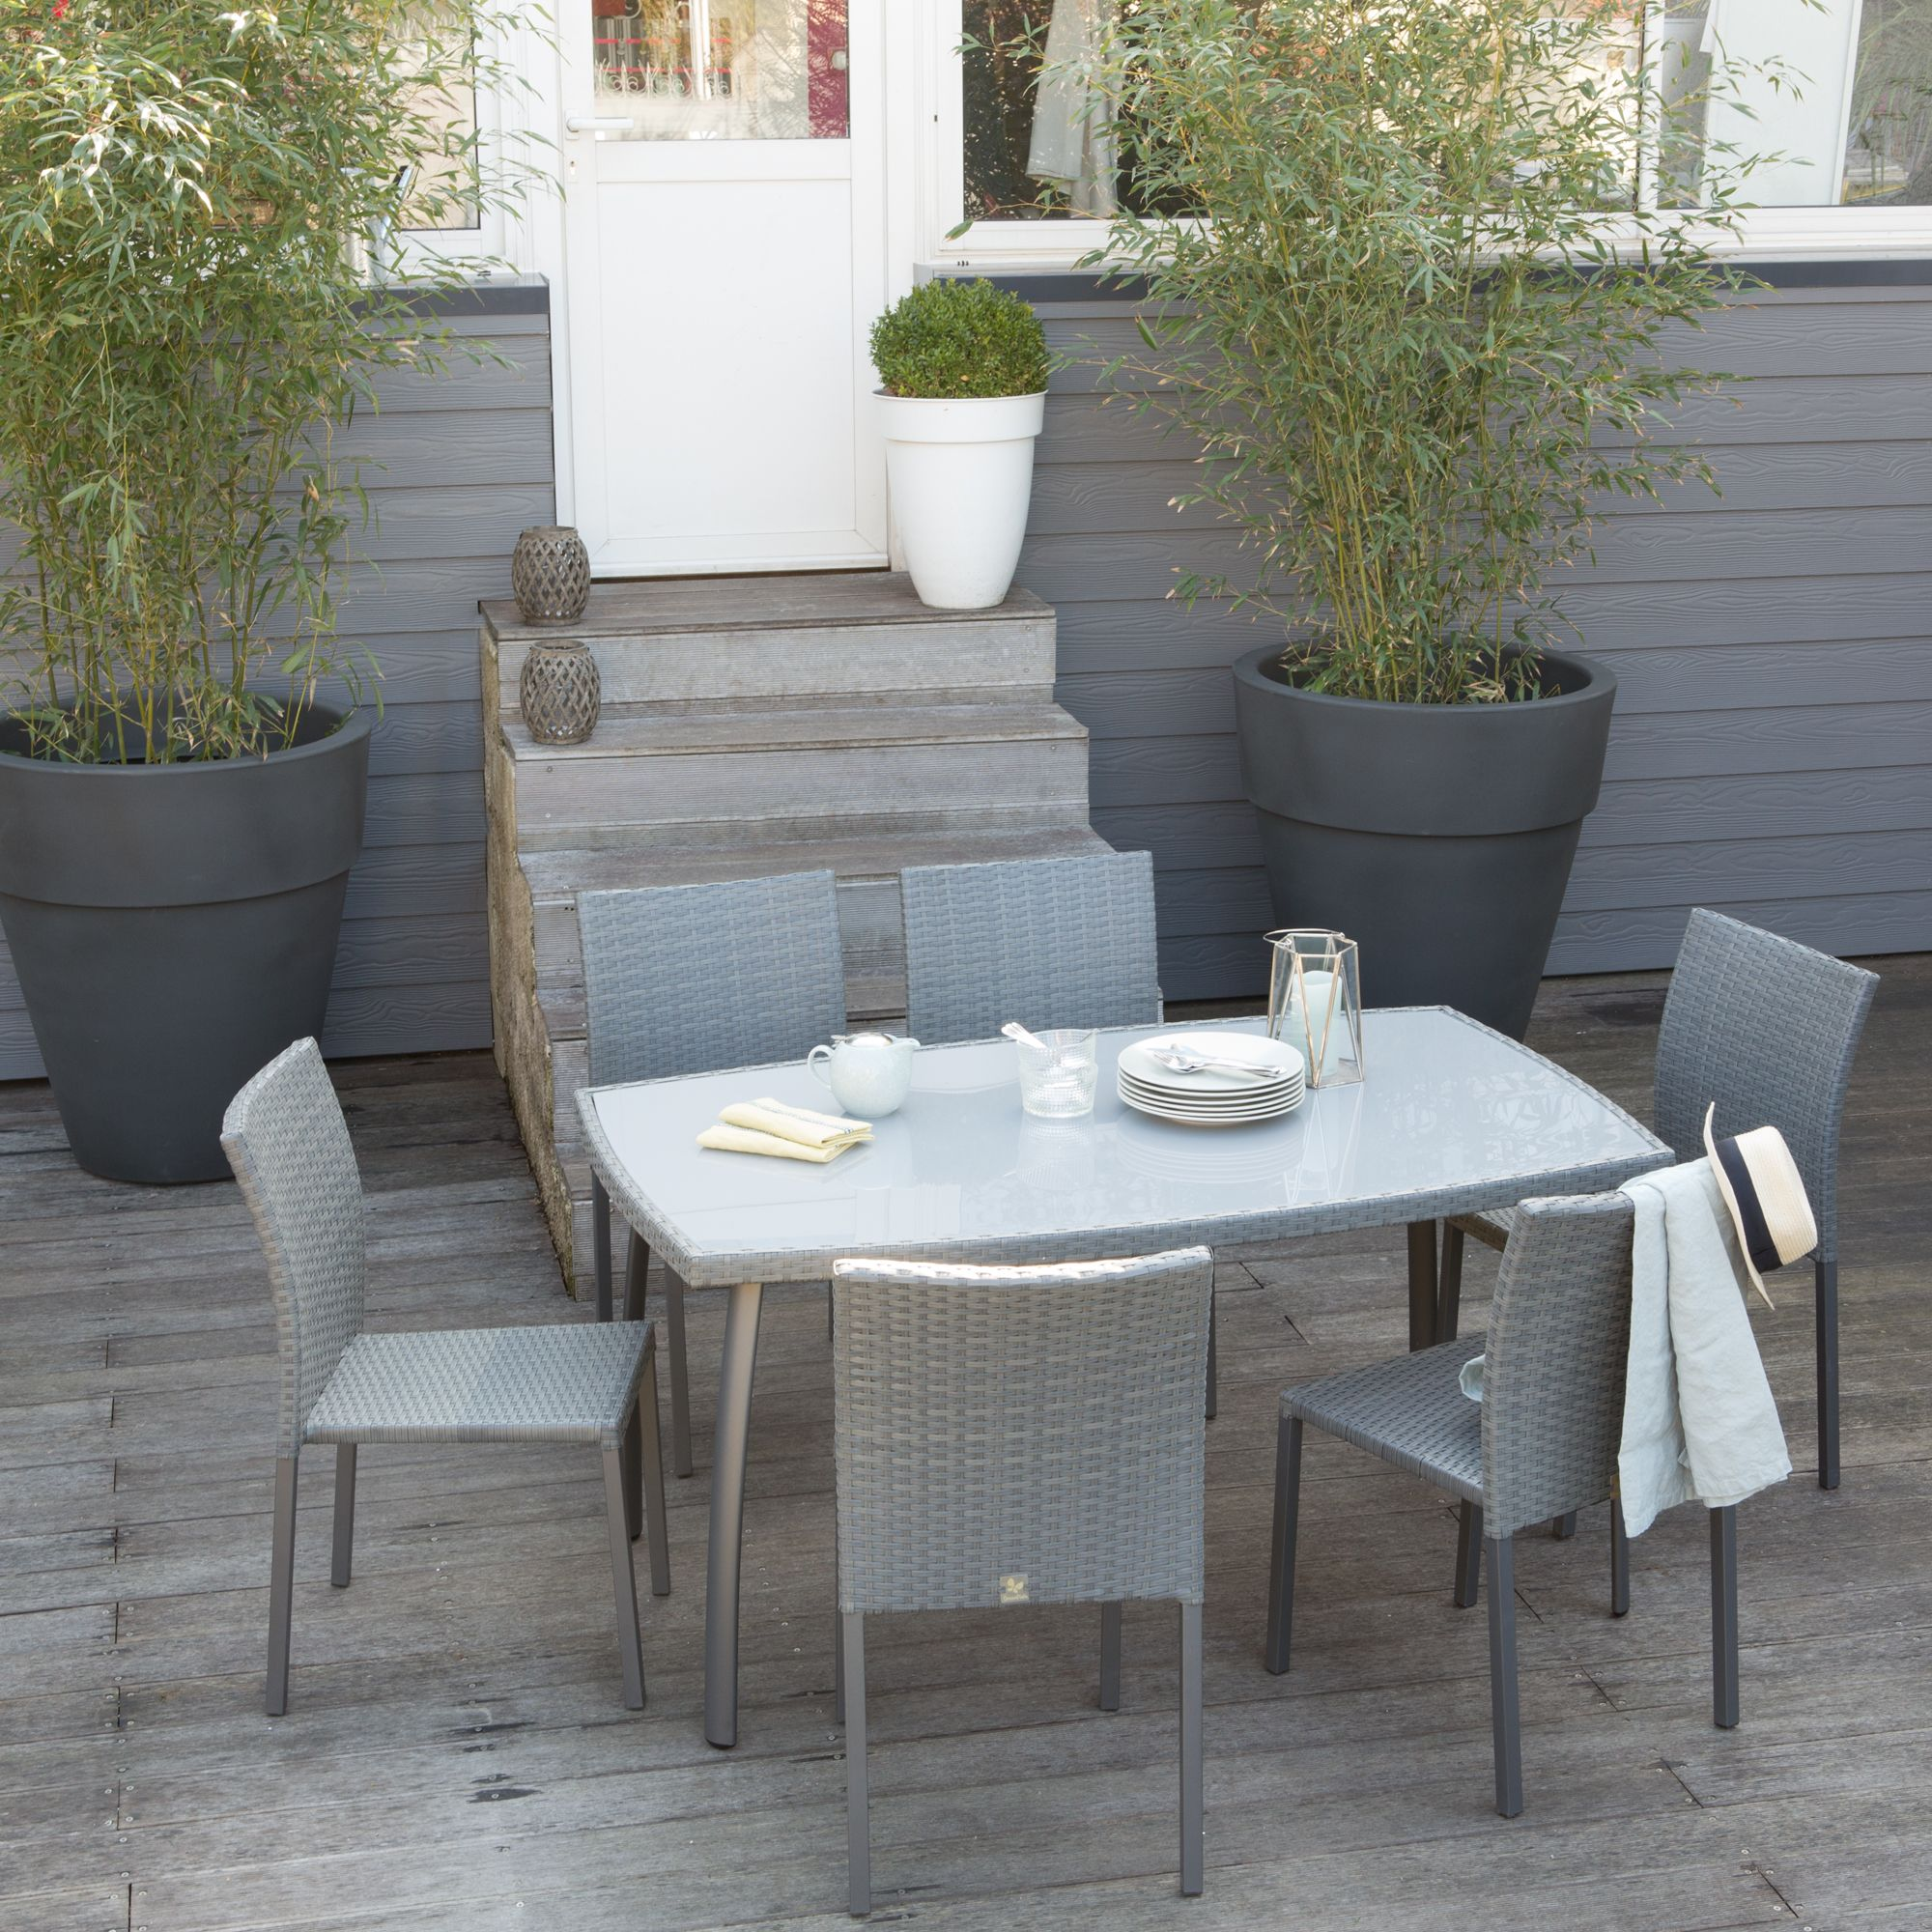 Salon de jardin 6 places en r sine tress e grise table for Table et chaise de jardin en resine tressee gris